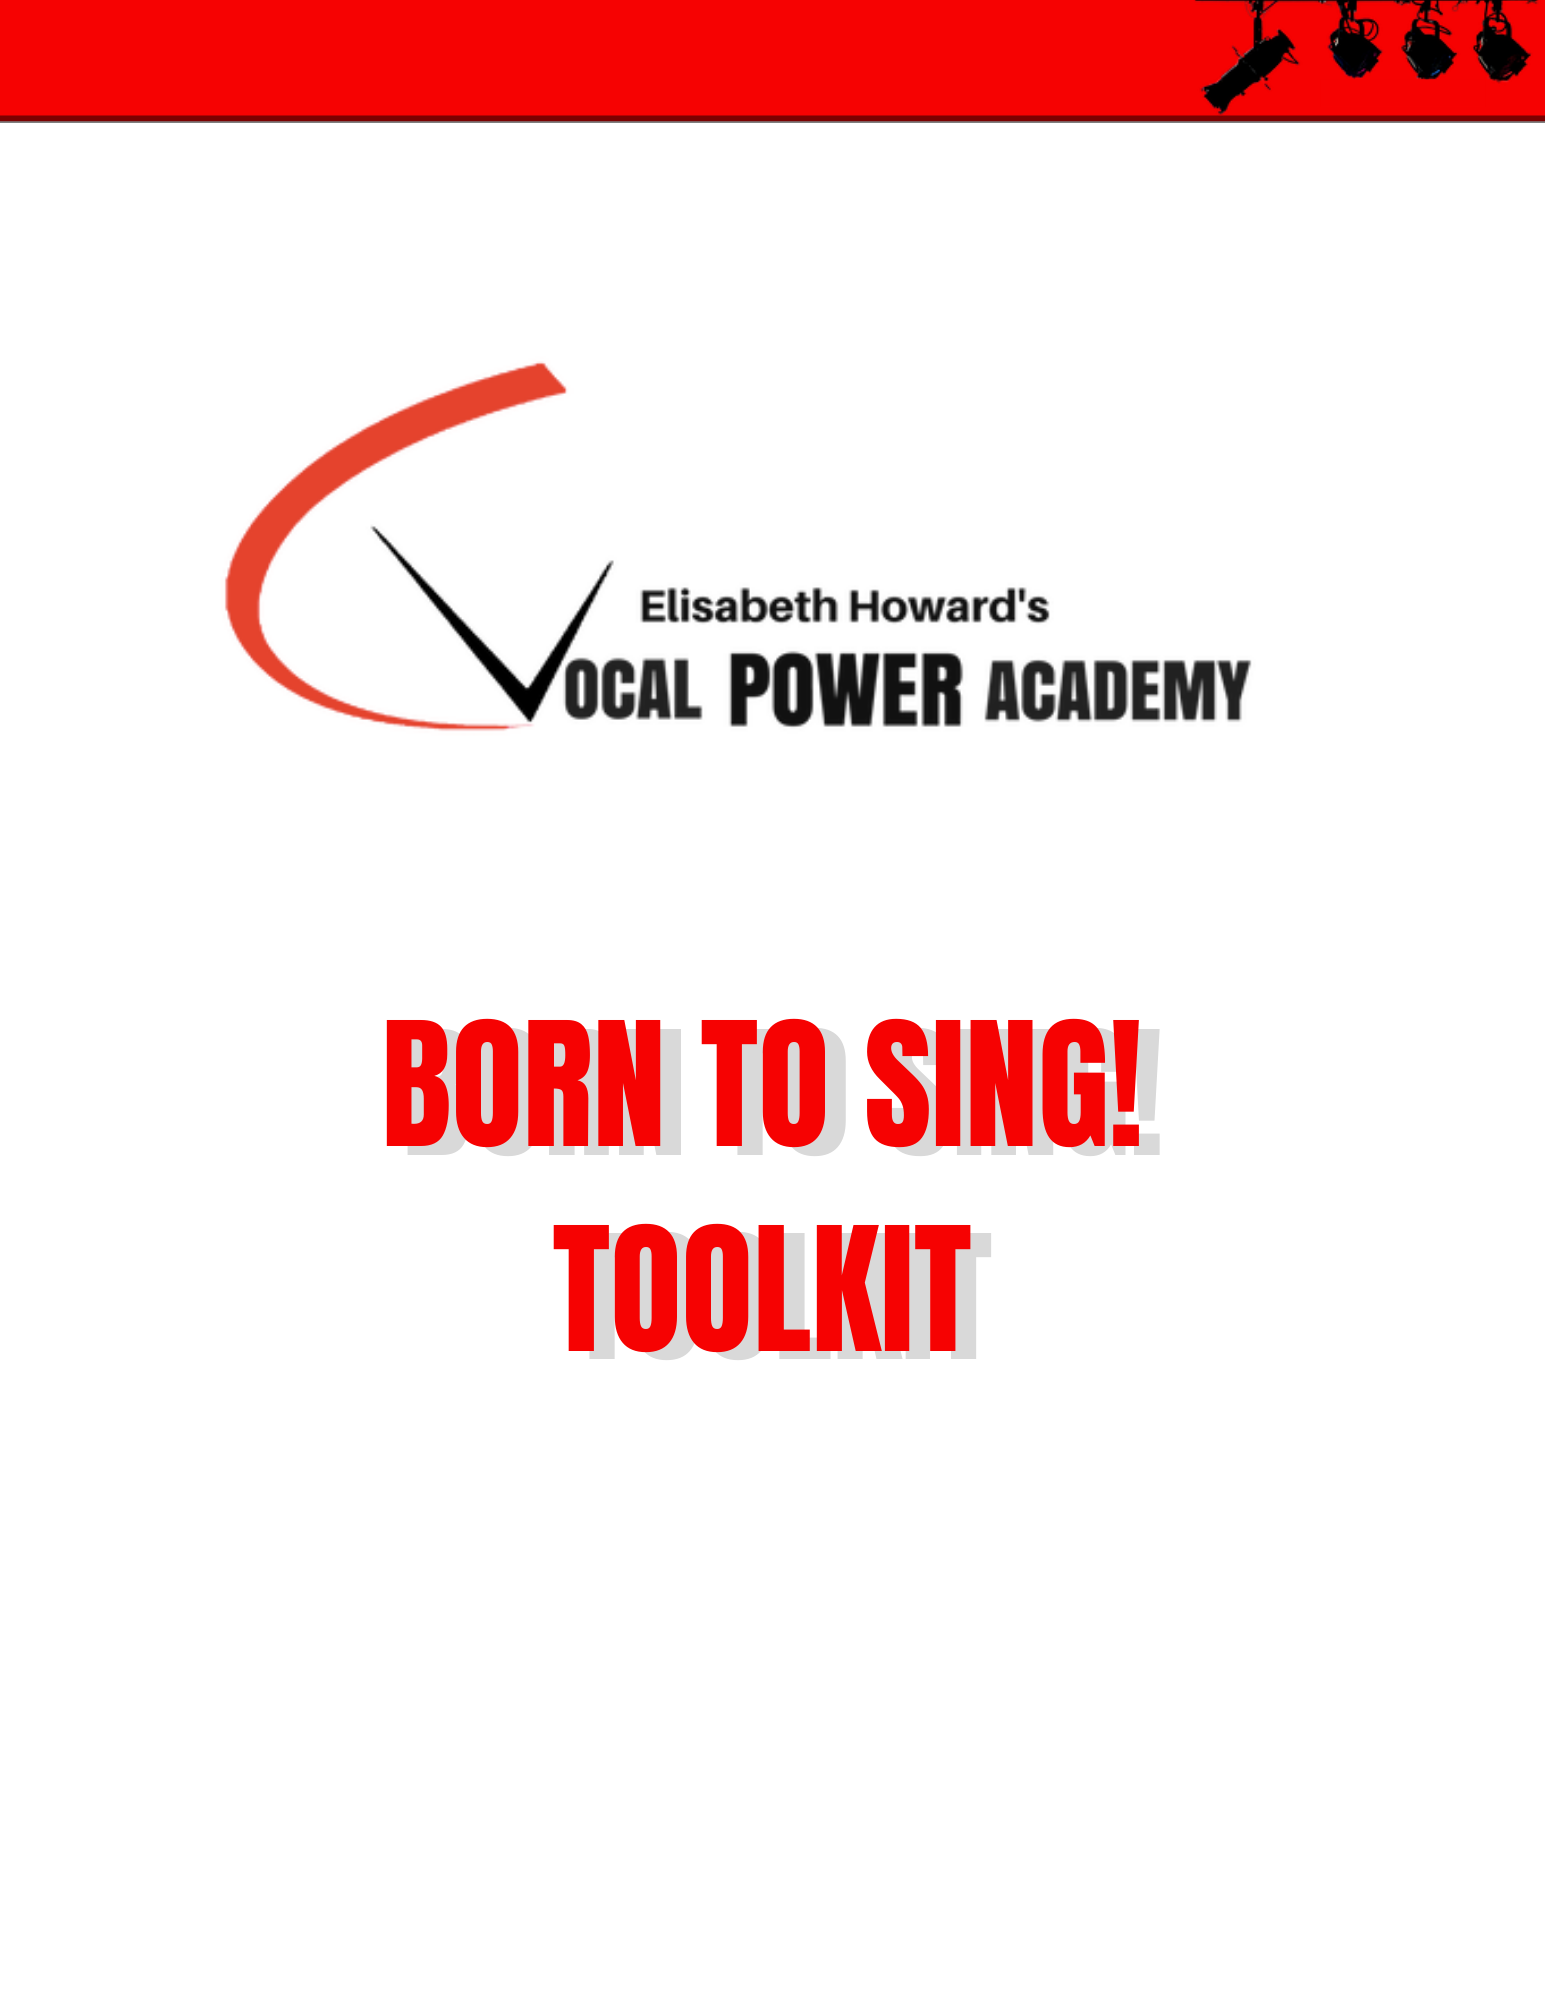 BORN TO SING! Toolkit